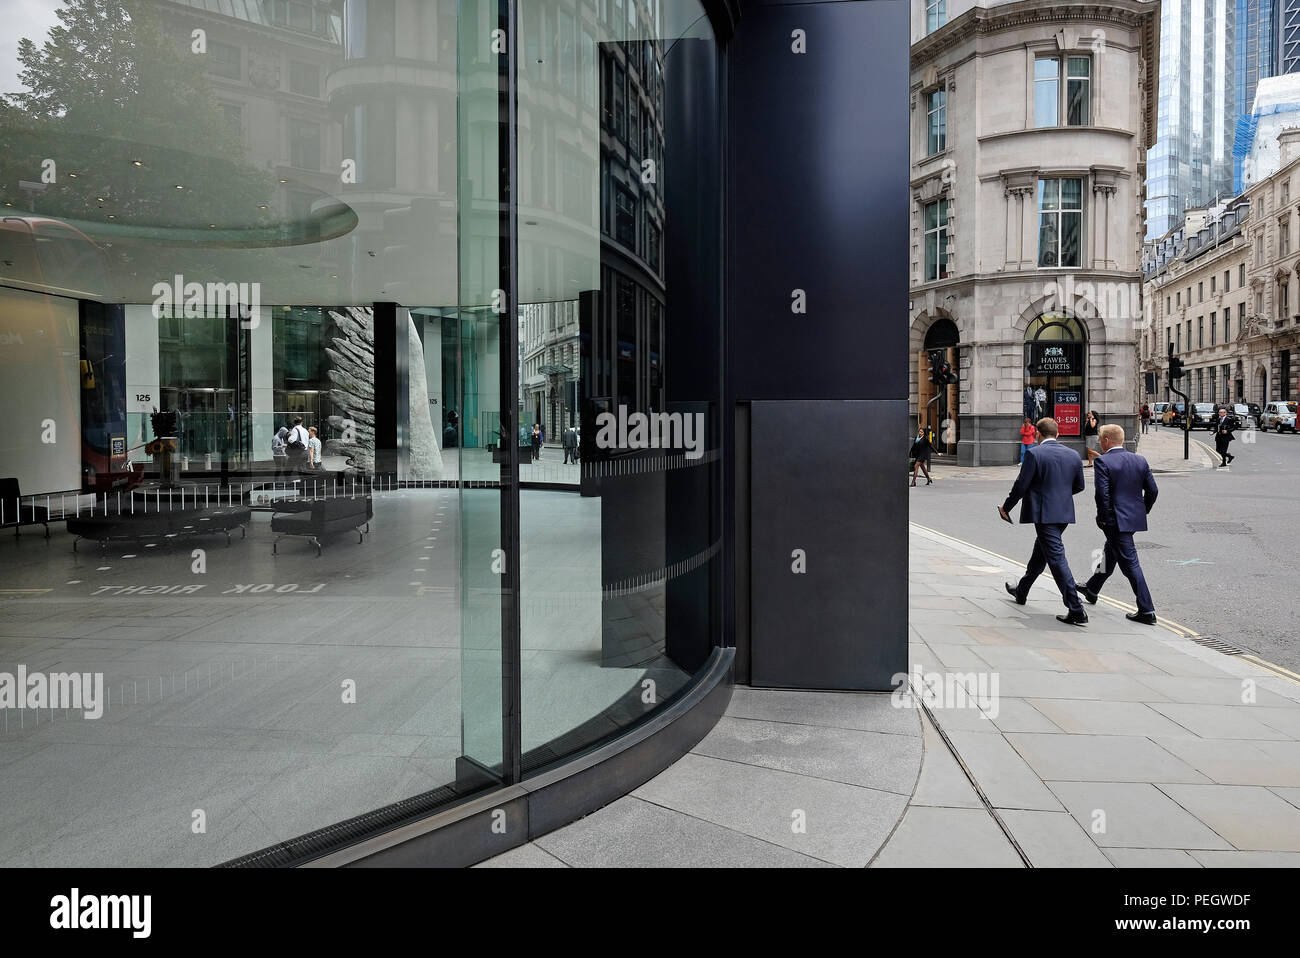 office workers walking in threadneedle street area, central london, england - Stock Image